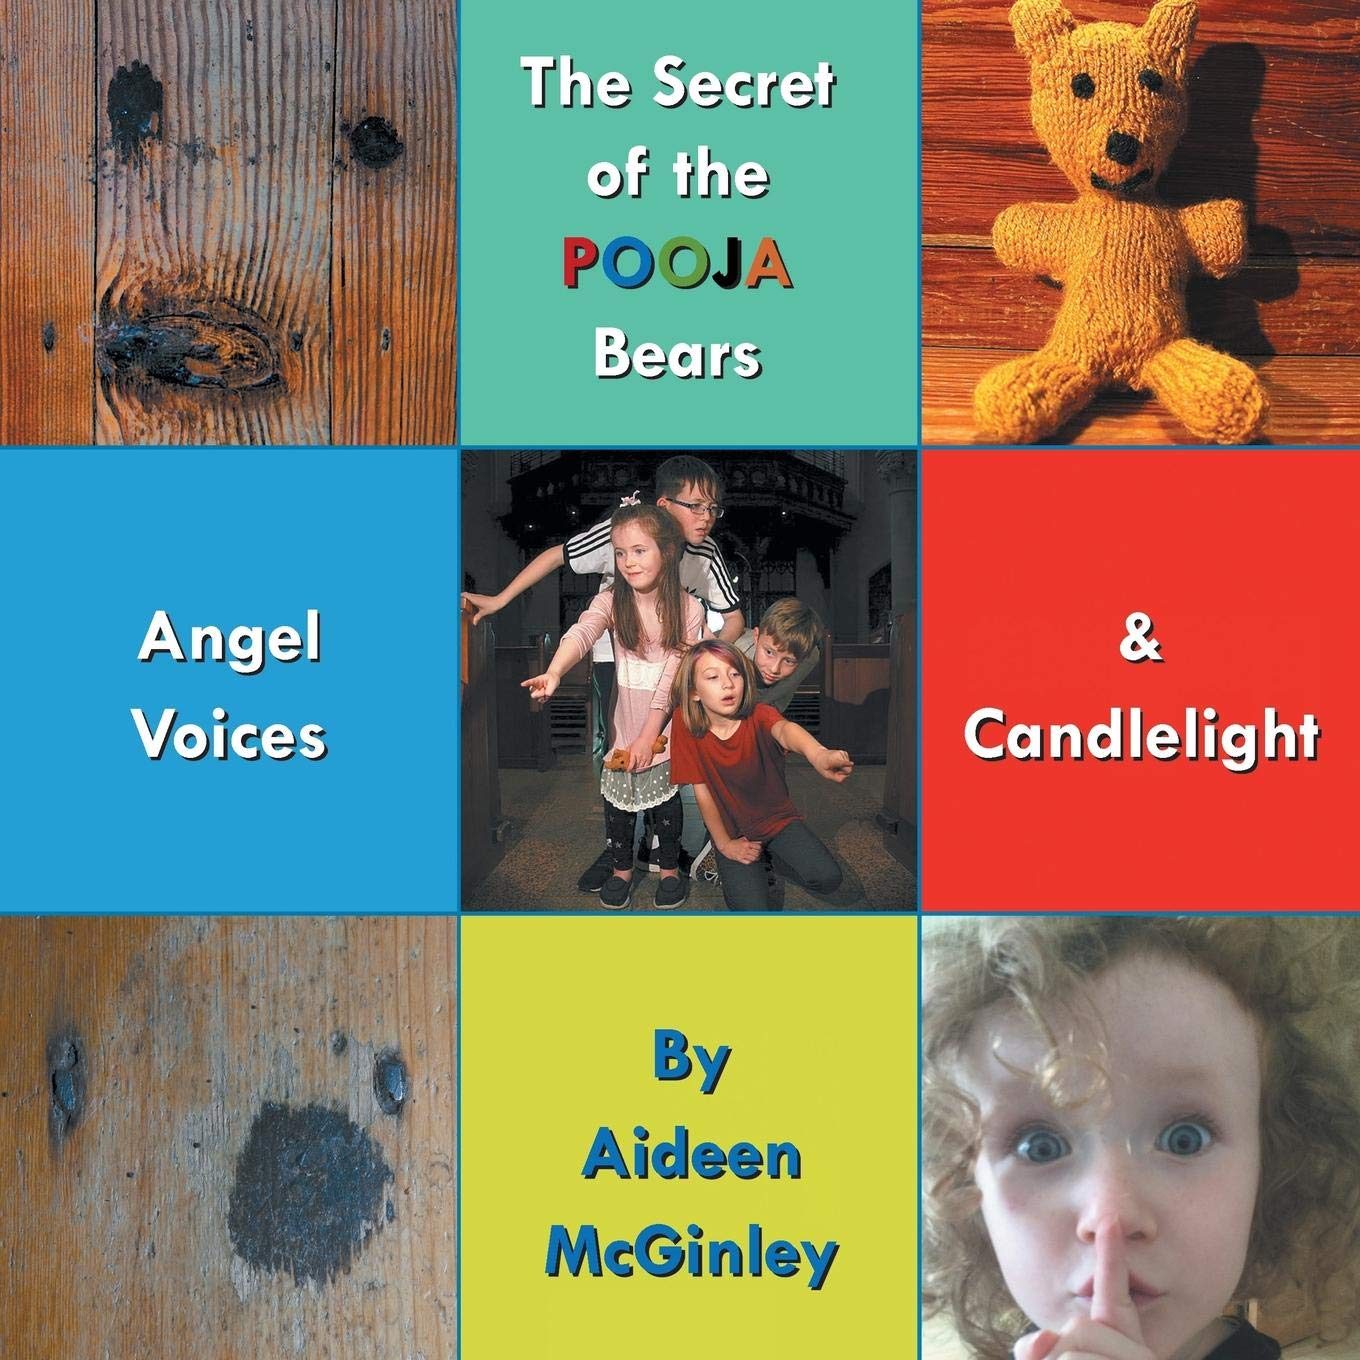 The Secret of the Pooja Bears: Angel Voices & Candlelight